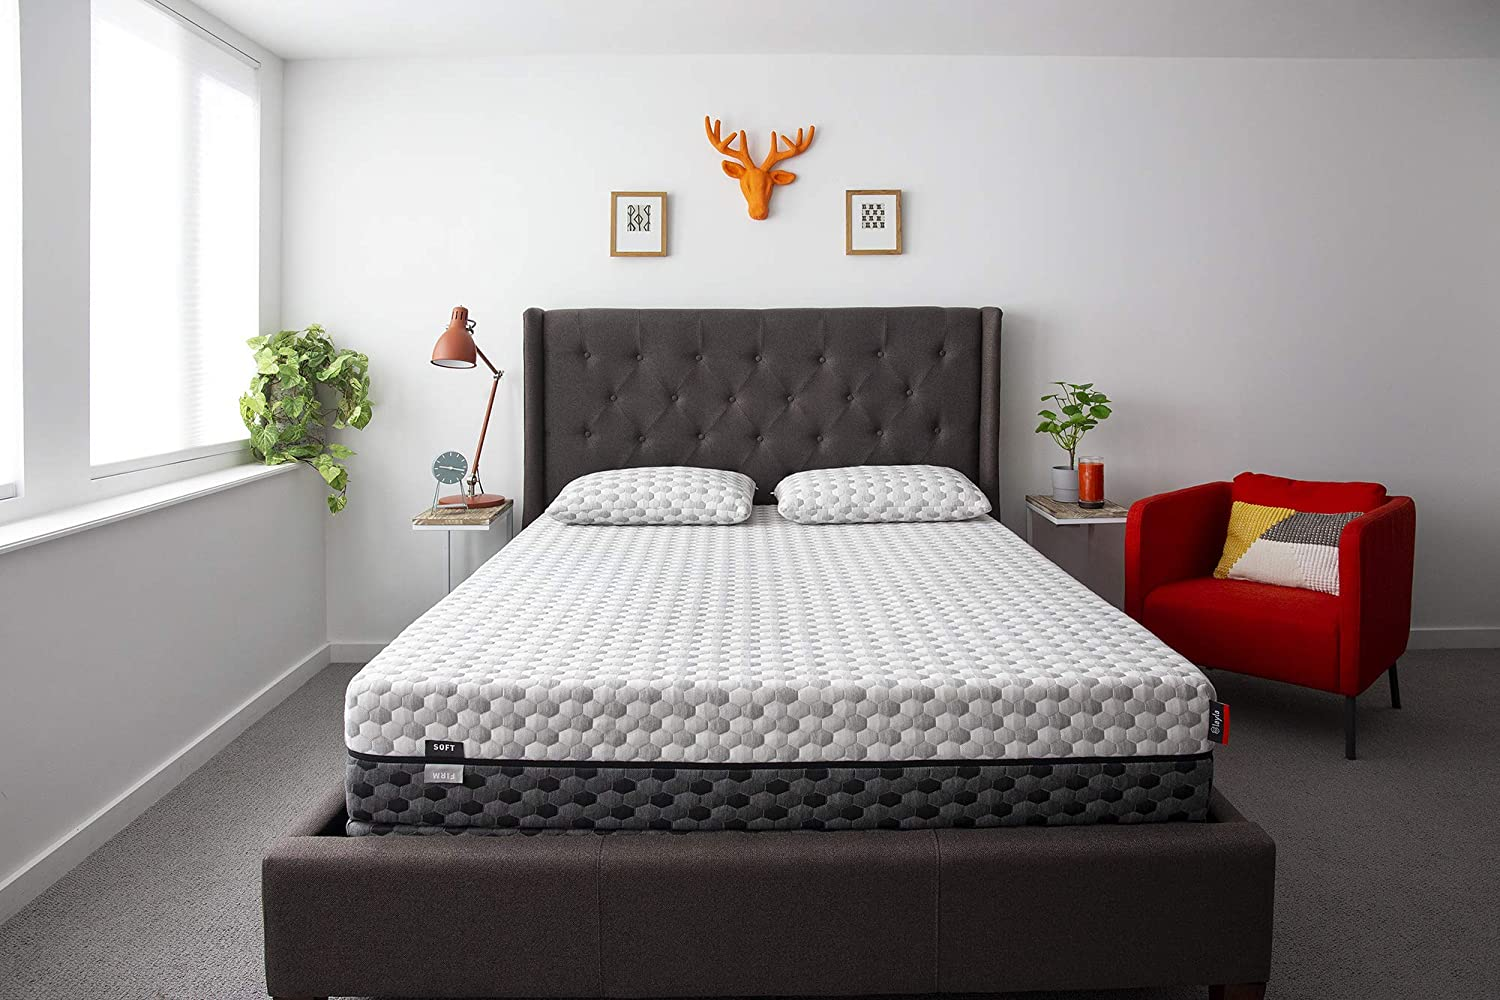 Layla Sleep Copper Infused Memory Foam King Mattress